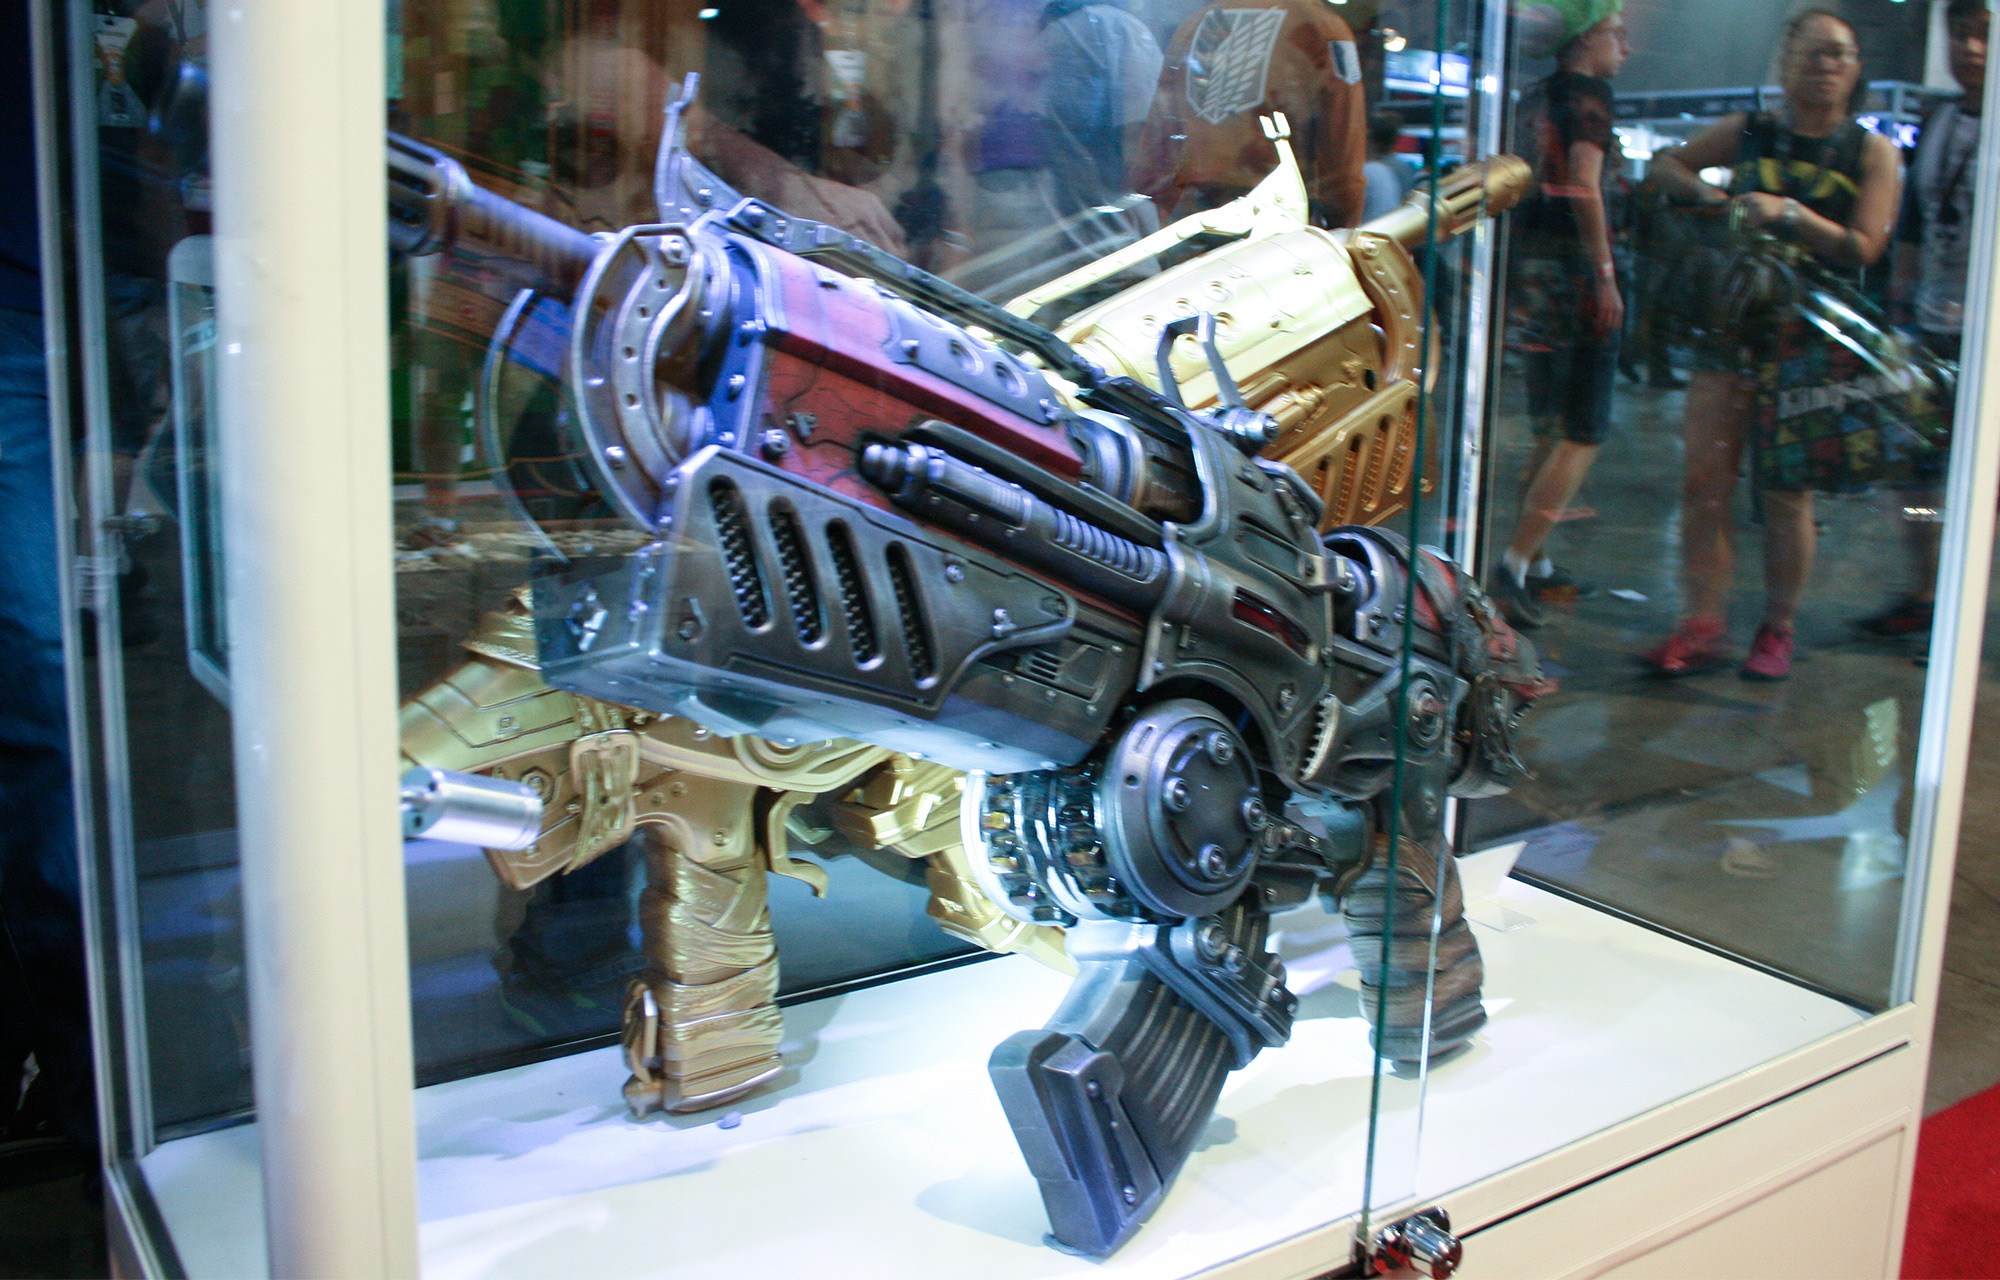 PAX Aus - Melbourne 2014 - King's Comics - guns